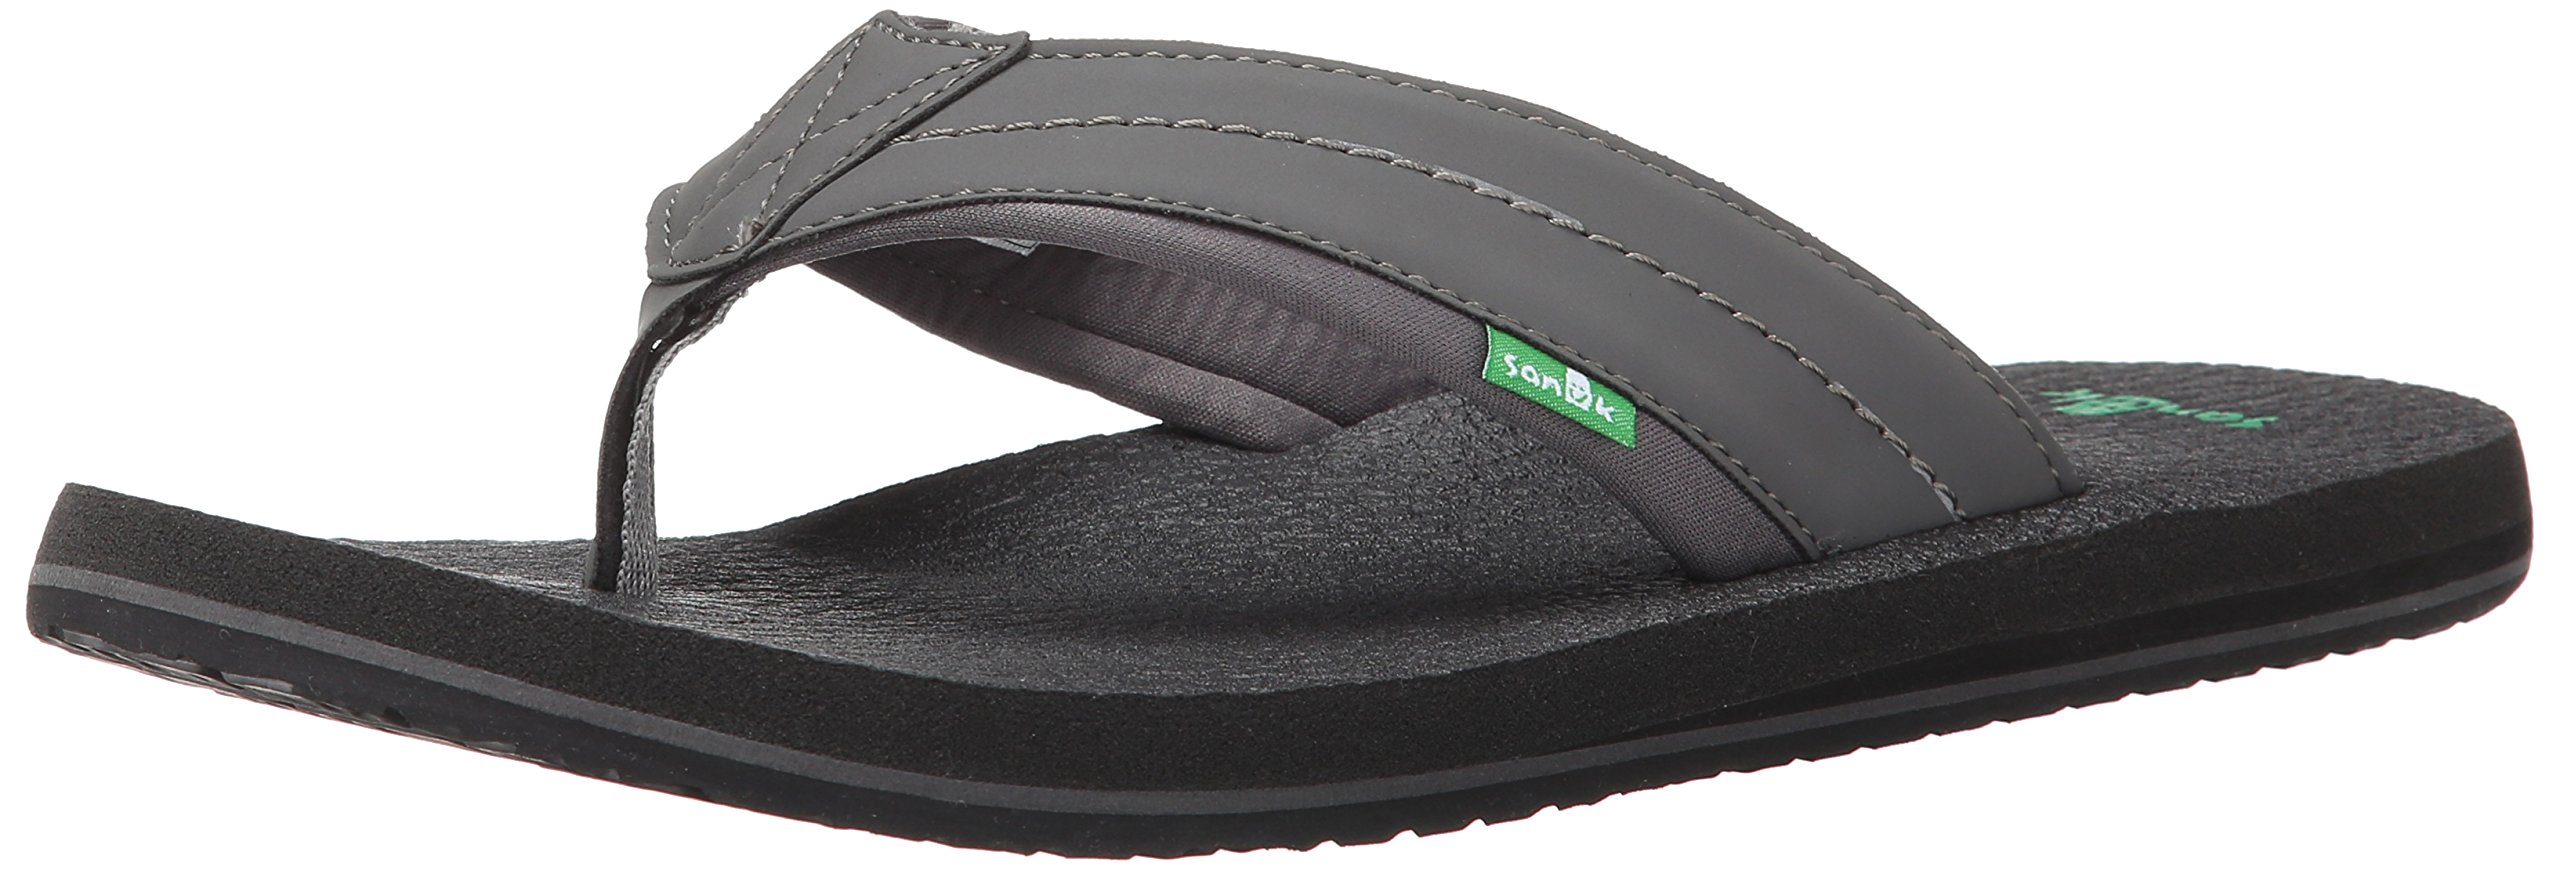 Sanuk Men's Beer Cozy 2 Sandal, Charcoal, 11 M US by Sanuk